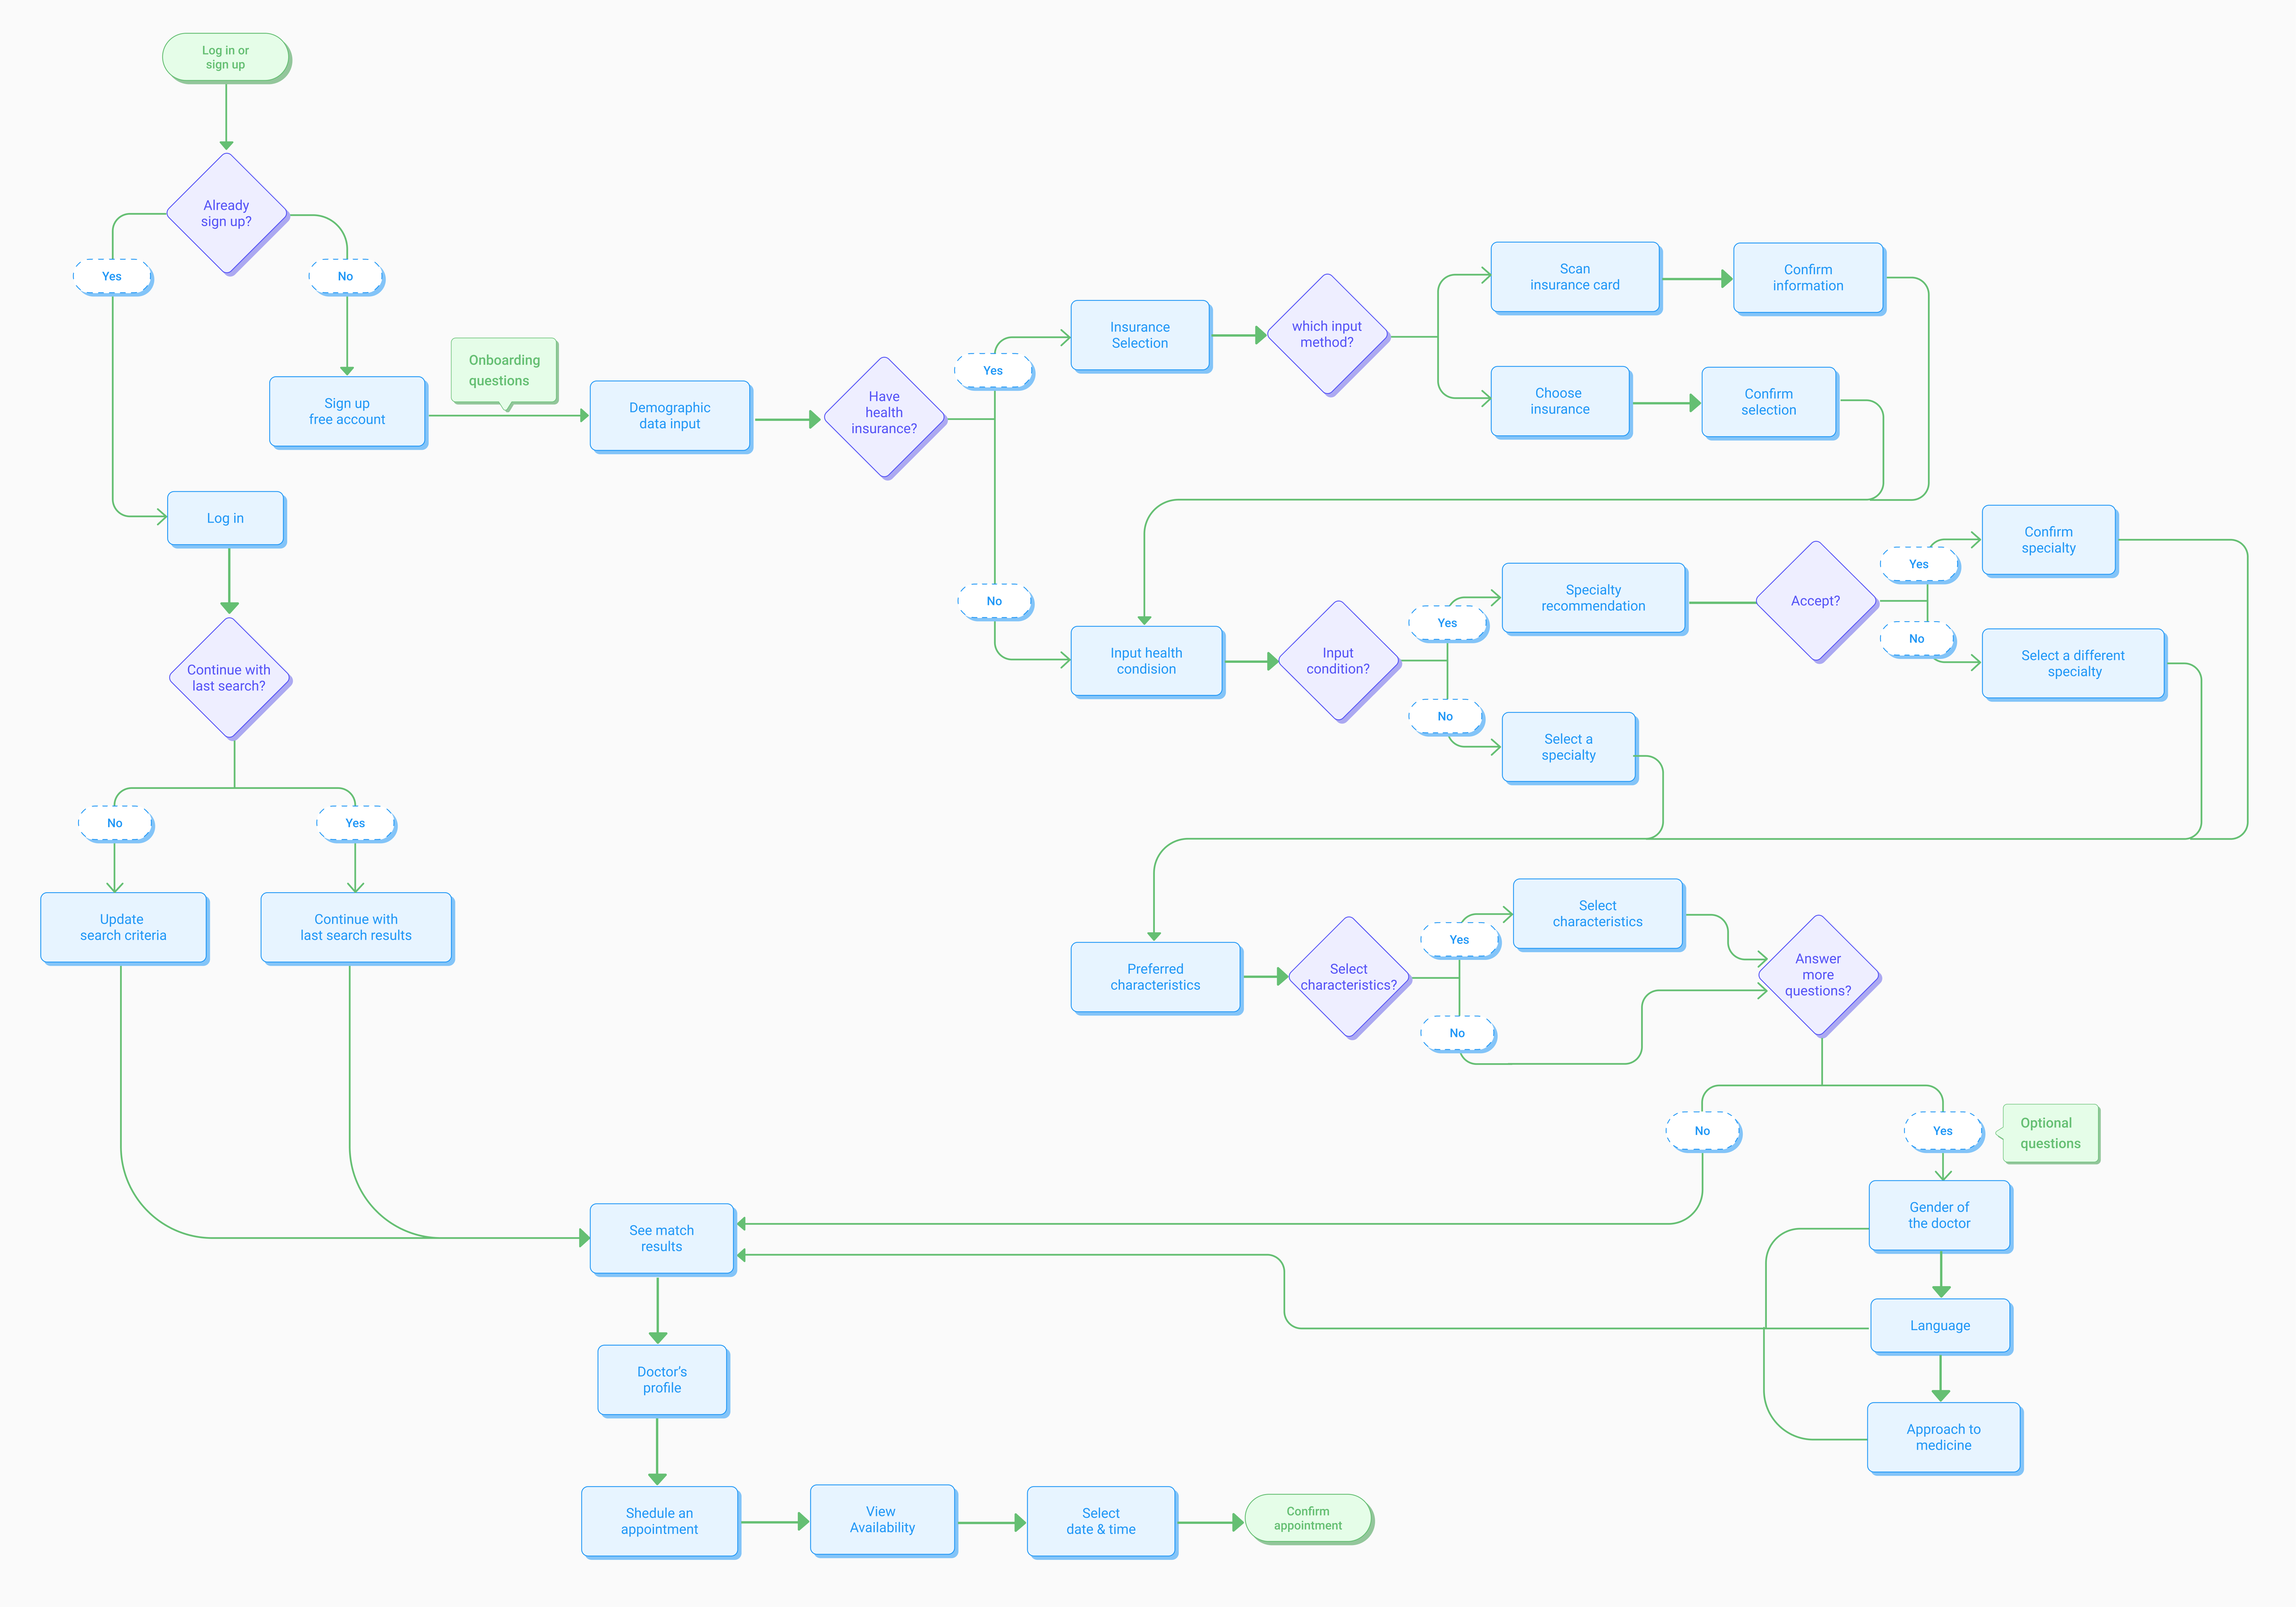 A user flow mapping out steps the user takes - from entry point to successfully scheduling an appointment.